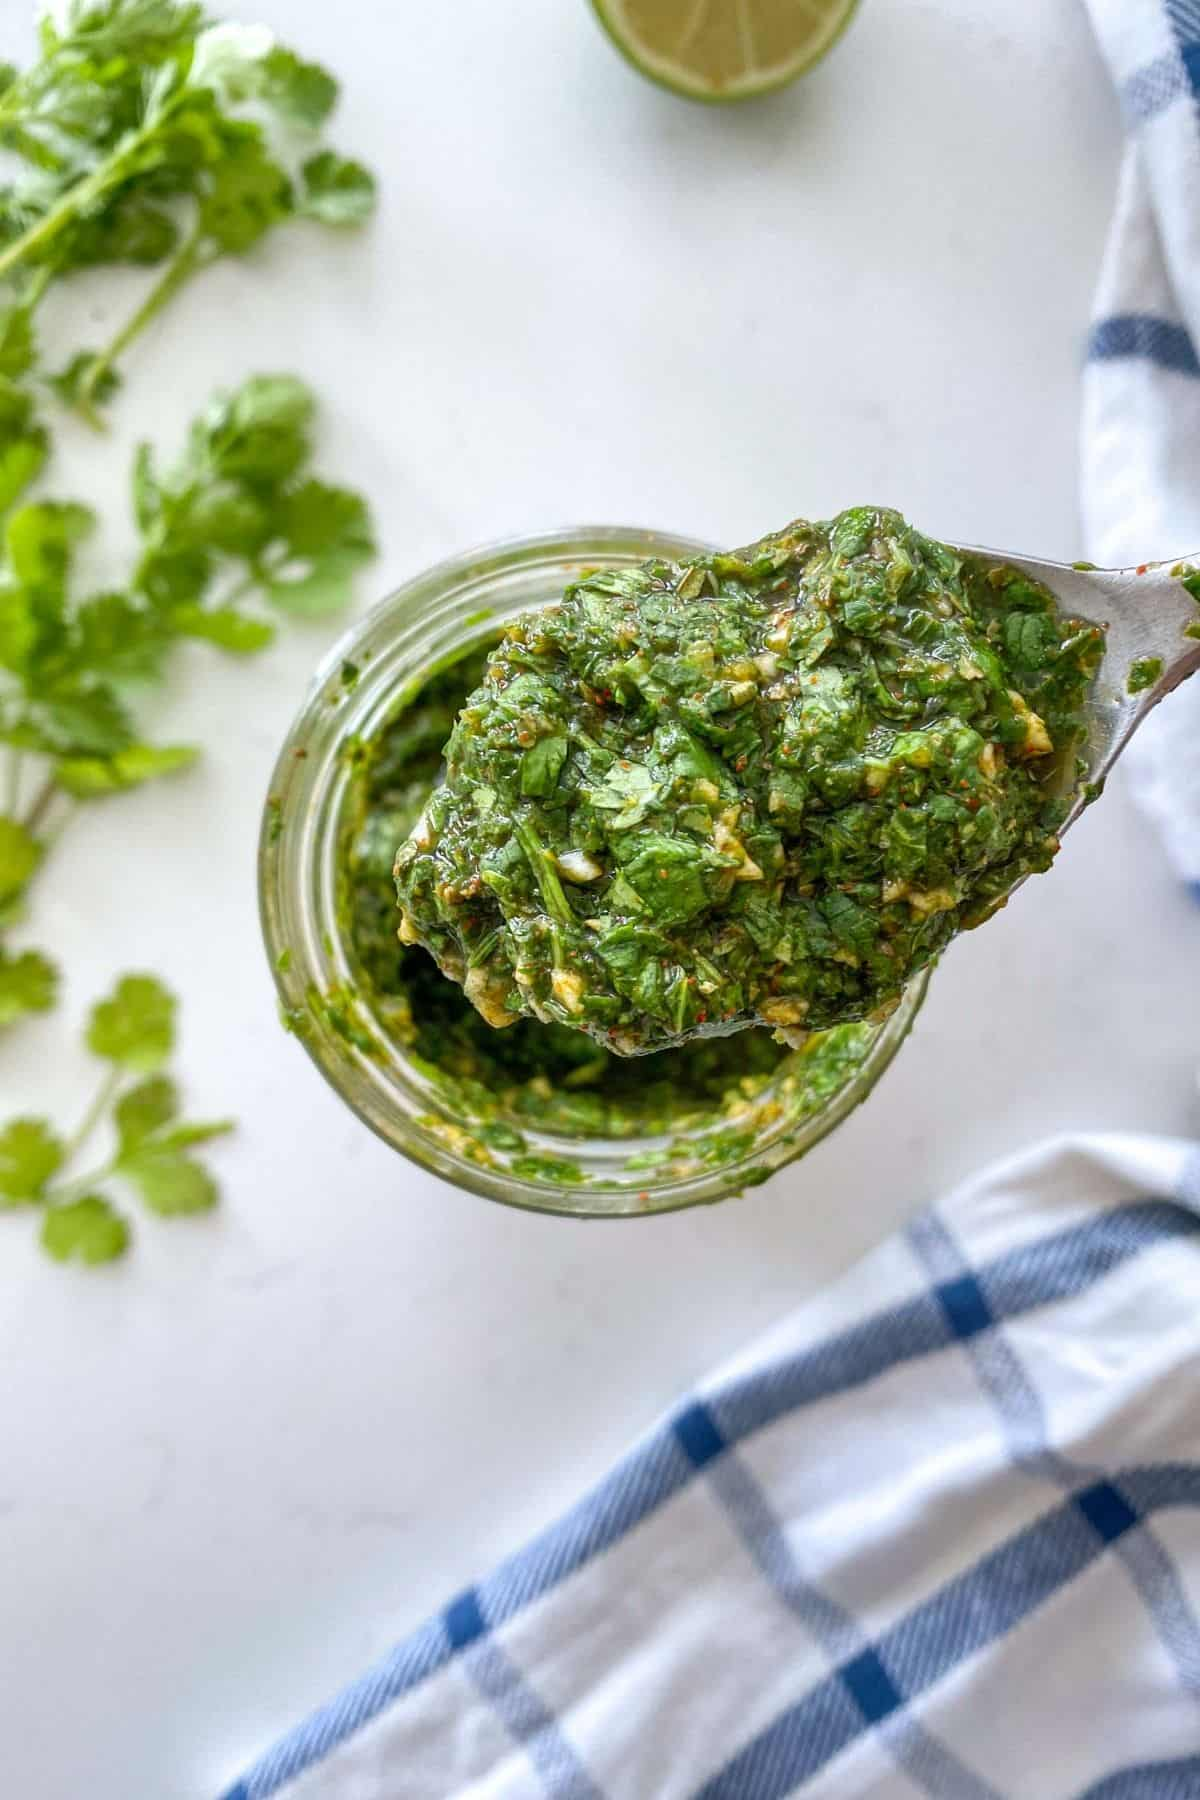 Spoonful of chimichurri being scooped from glass jar with herbs and lime in the background.